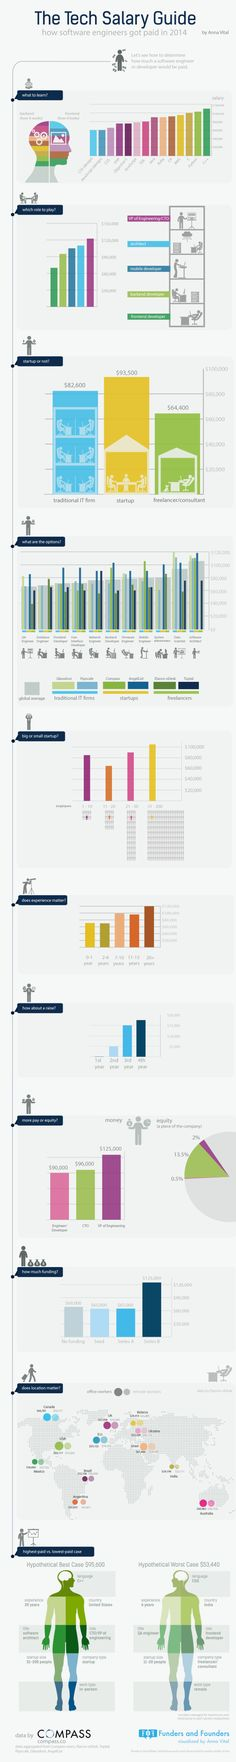 The Programming Skills, Jobs, and Company Types That Pay the Most